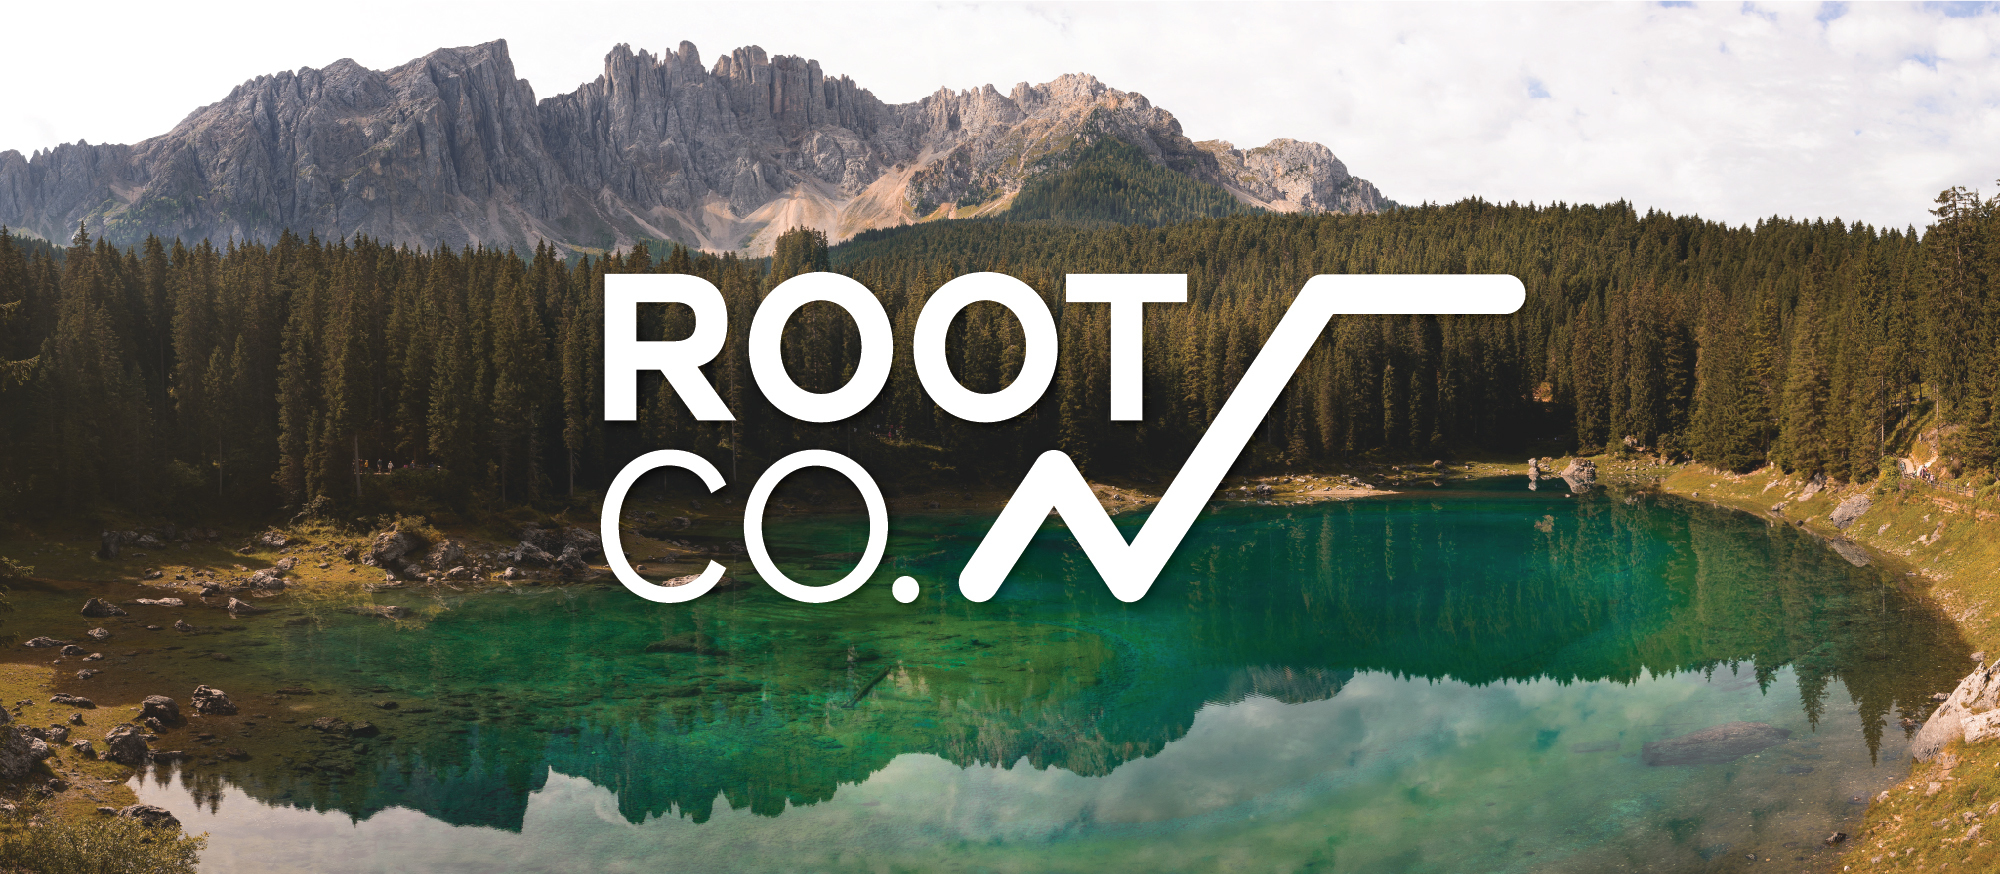 ROOT CO. LOGO